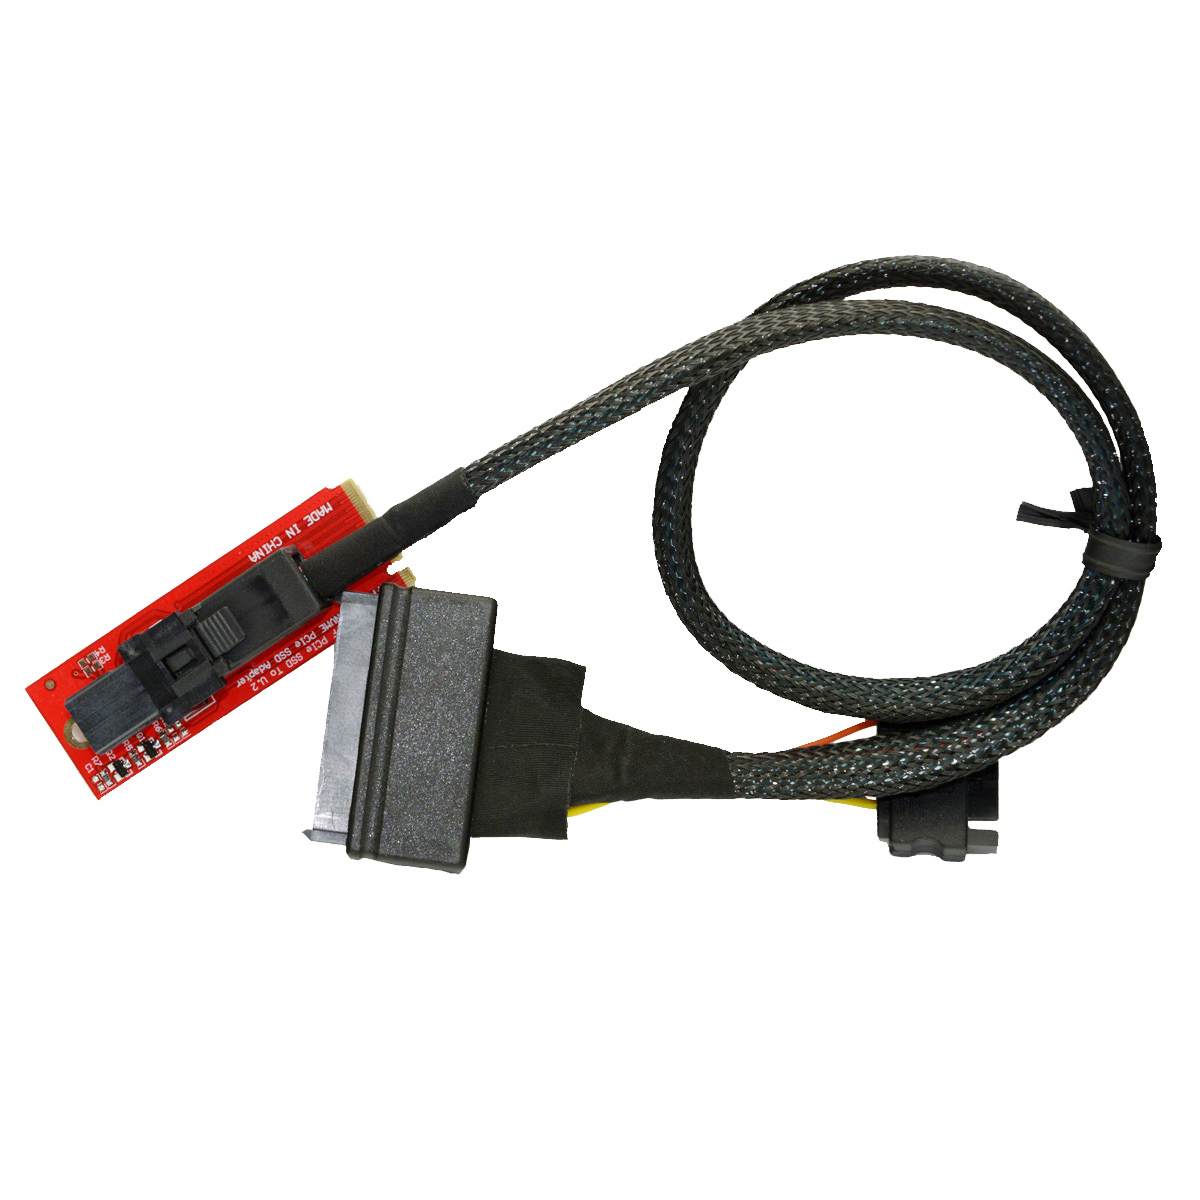 Nvme Ssd Cable : U kit sff nvme pcie ssd adapter cable for